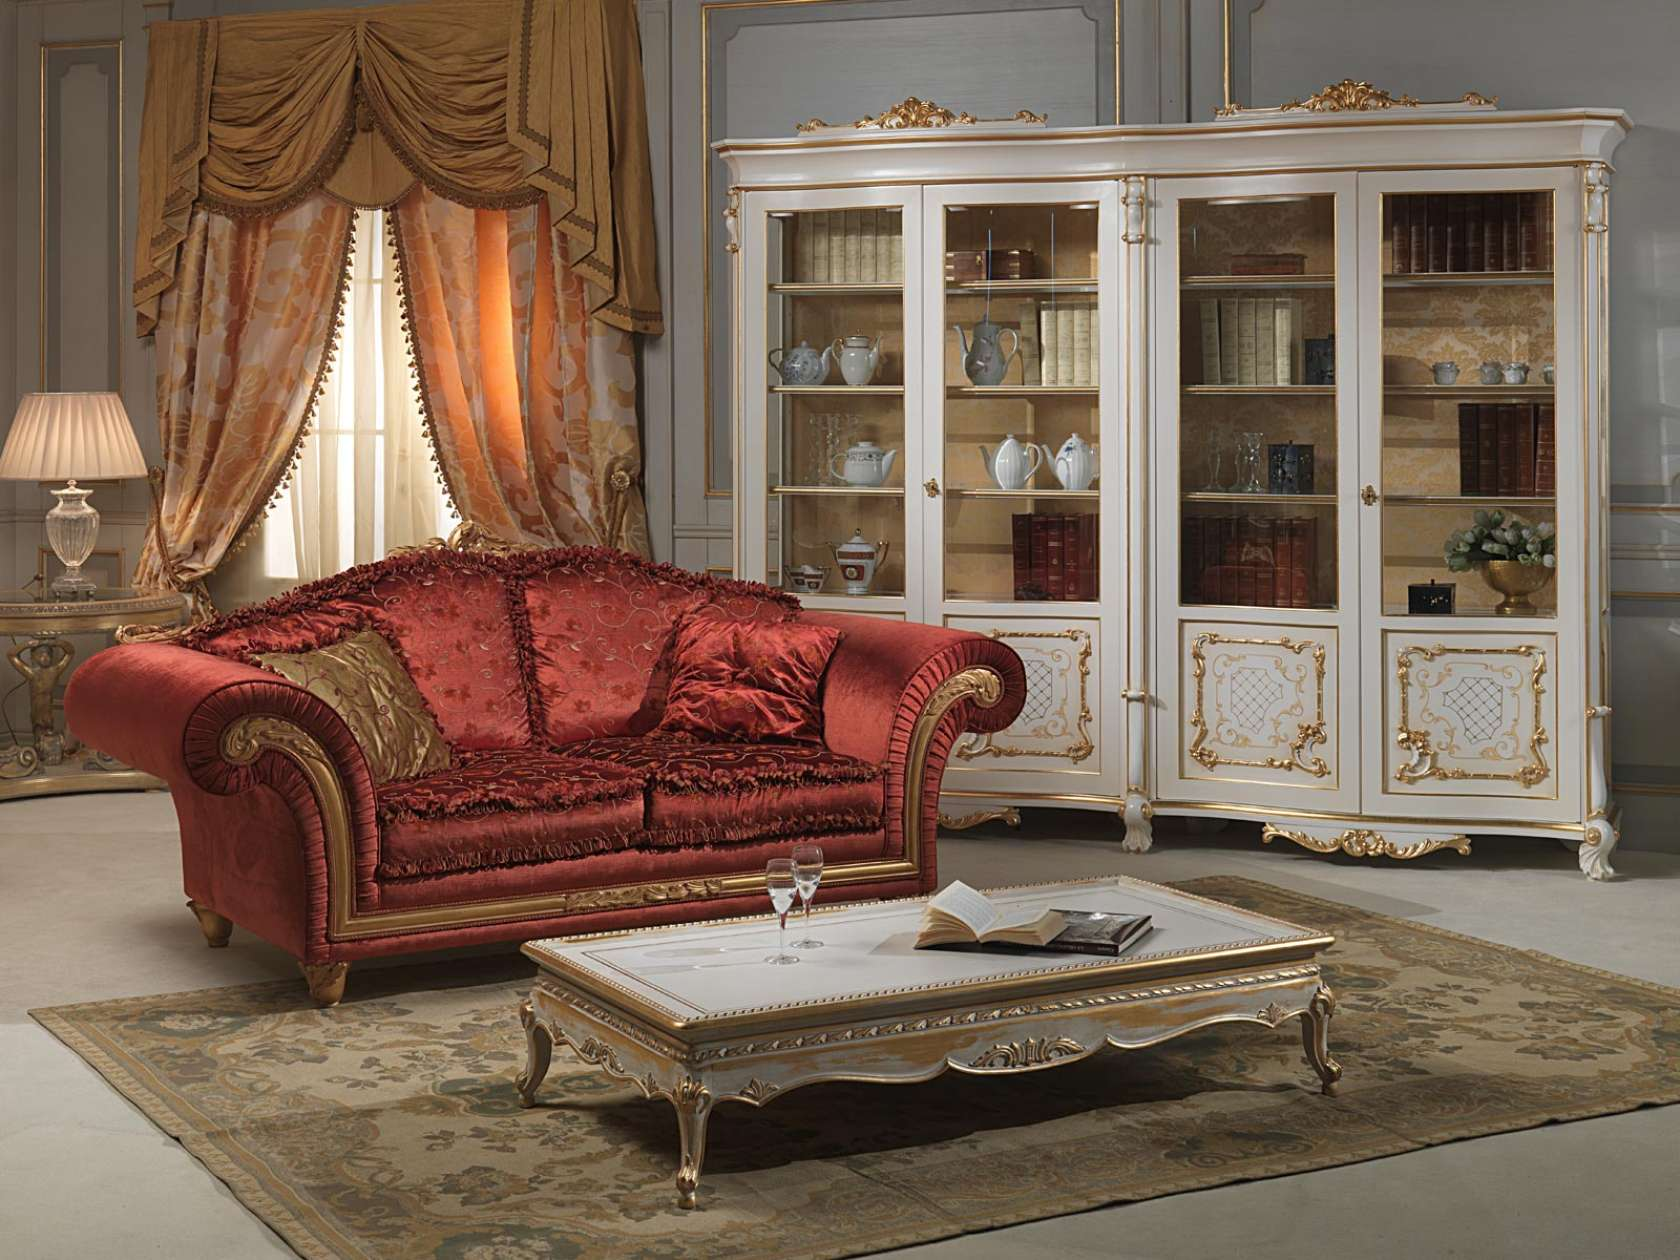 Louis xv living room furniture - Living Room With Venice Glass Showcase In Louis Xv Style